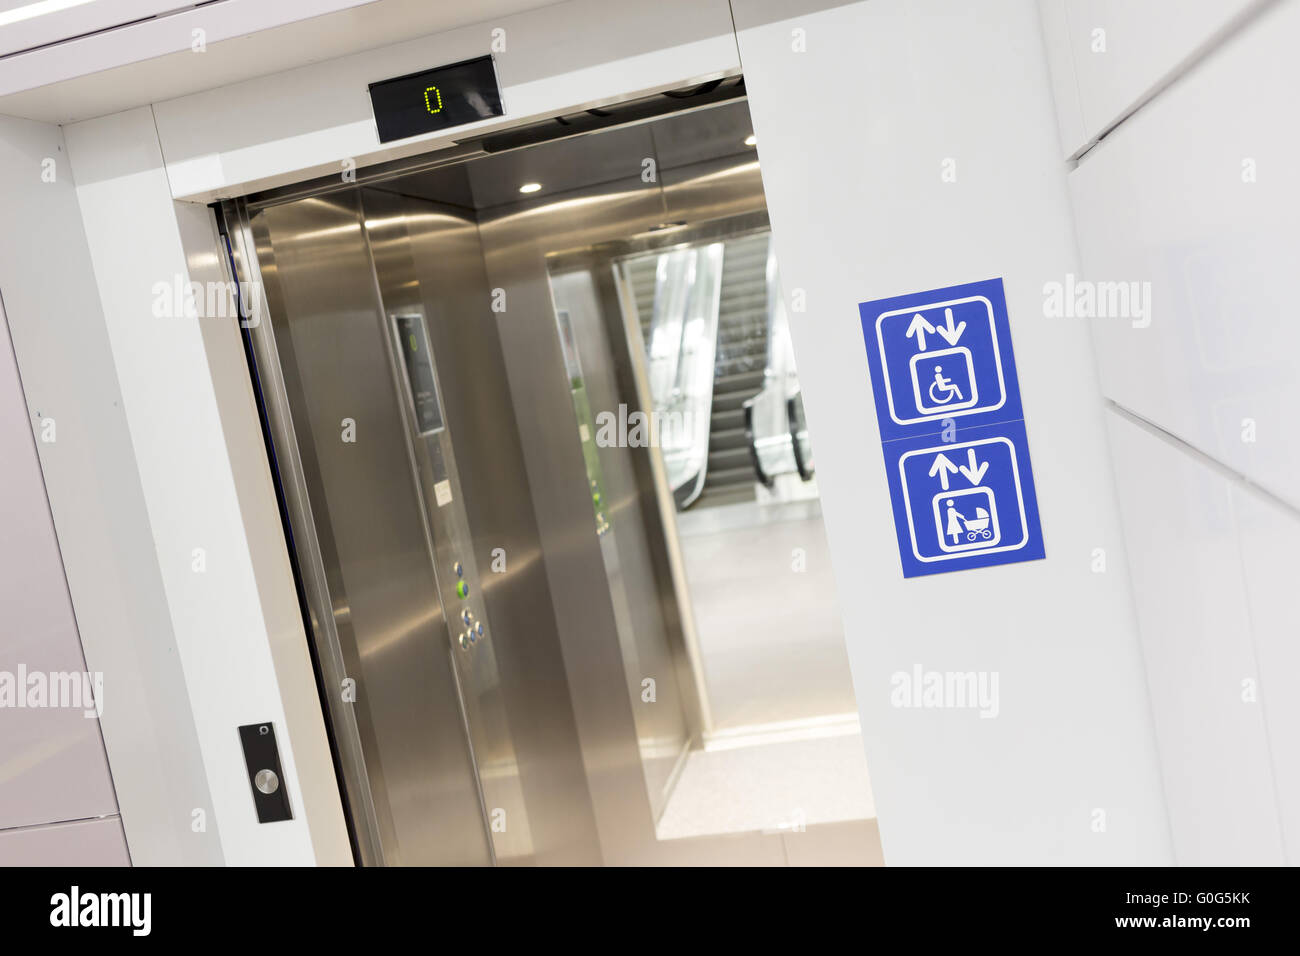 Opened elevator for mothers and physically disabled - Stock Image